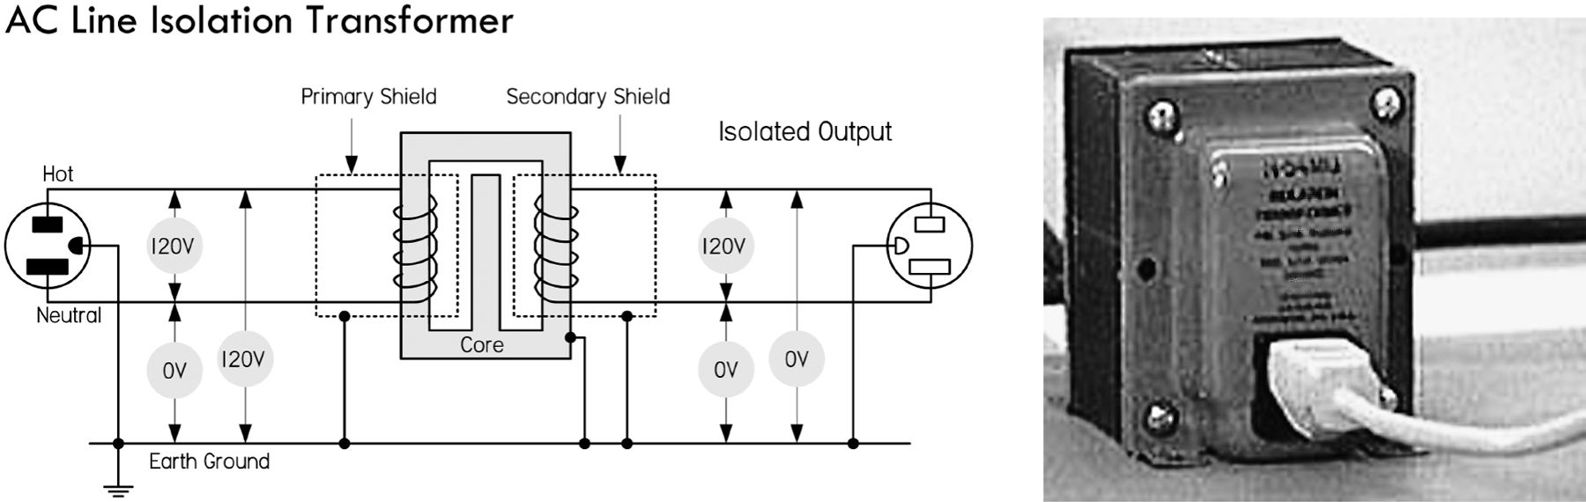 Hands On Electronics Practical For Inventors Fourth Isolation Transformer Circuit As Well Tube Lifier Together Figure 763 Basic Schematic Of A Mains Used To Isolate The Load From Source Provide Ground Fault Protection